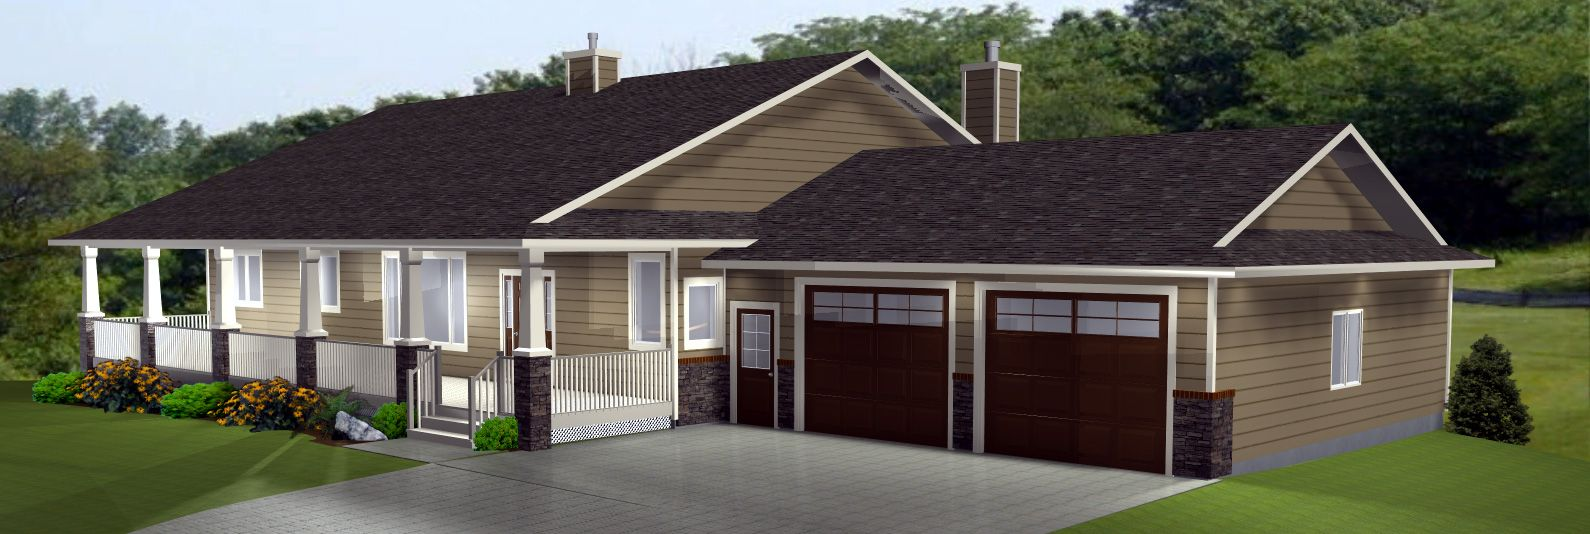 Ranch Style House Plans With Basements L Shaped Ranch Remodel